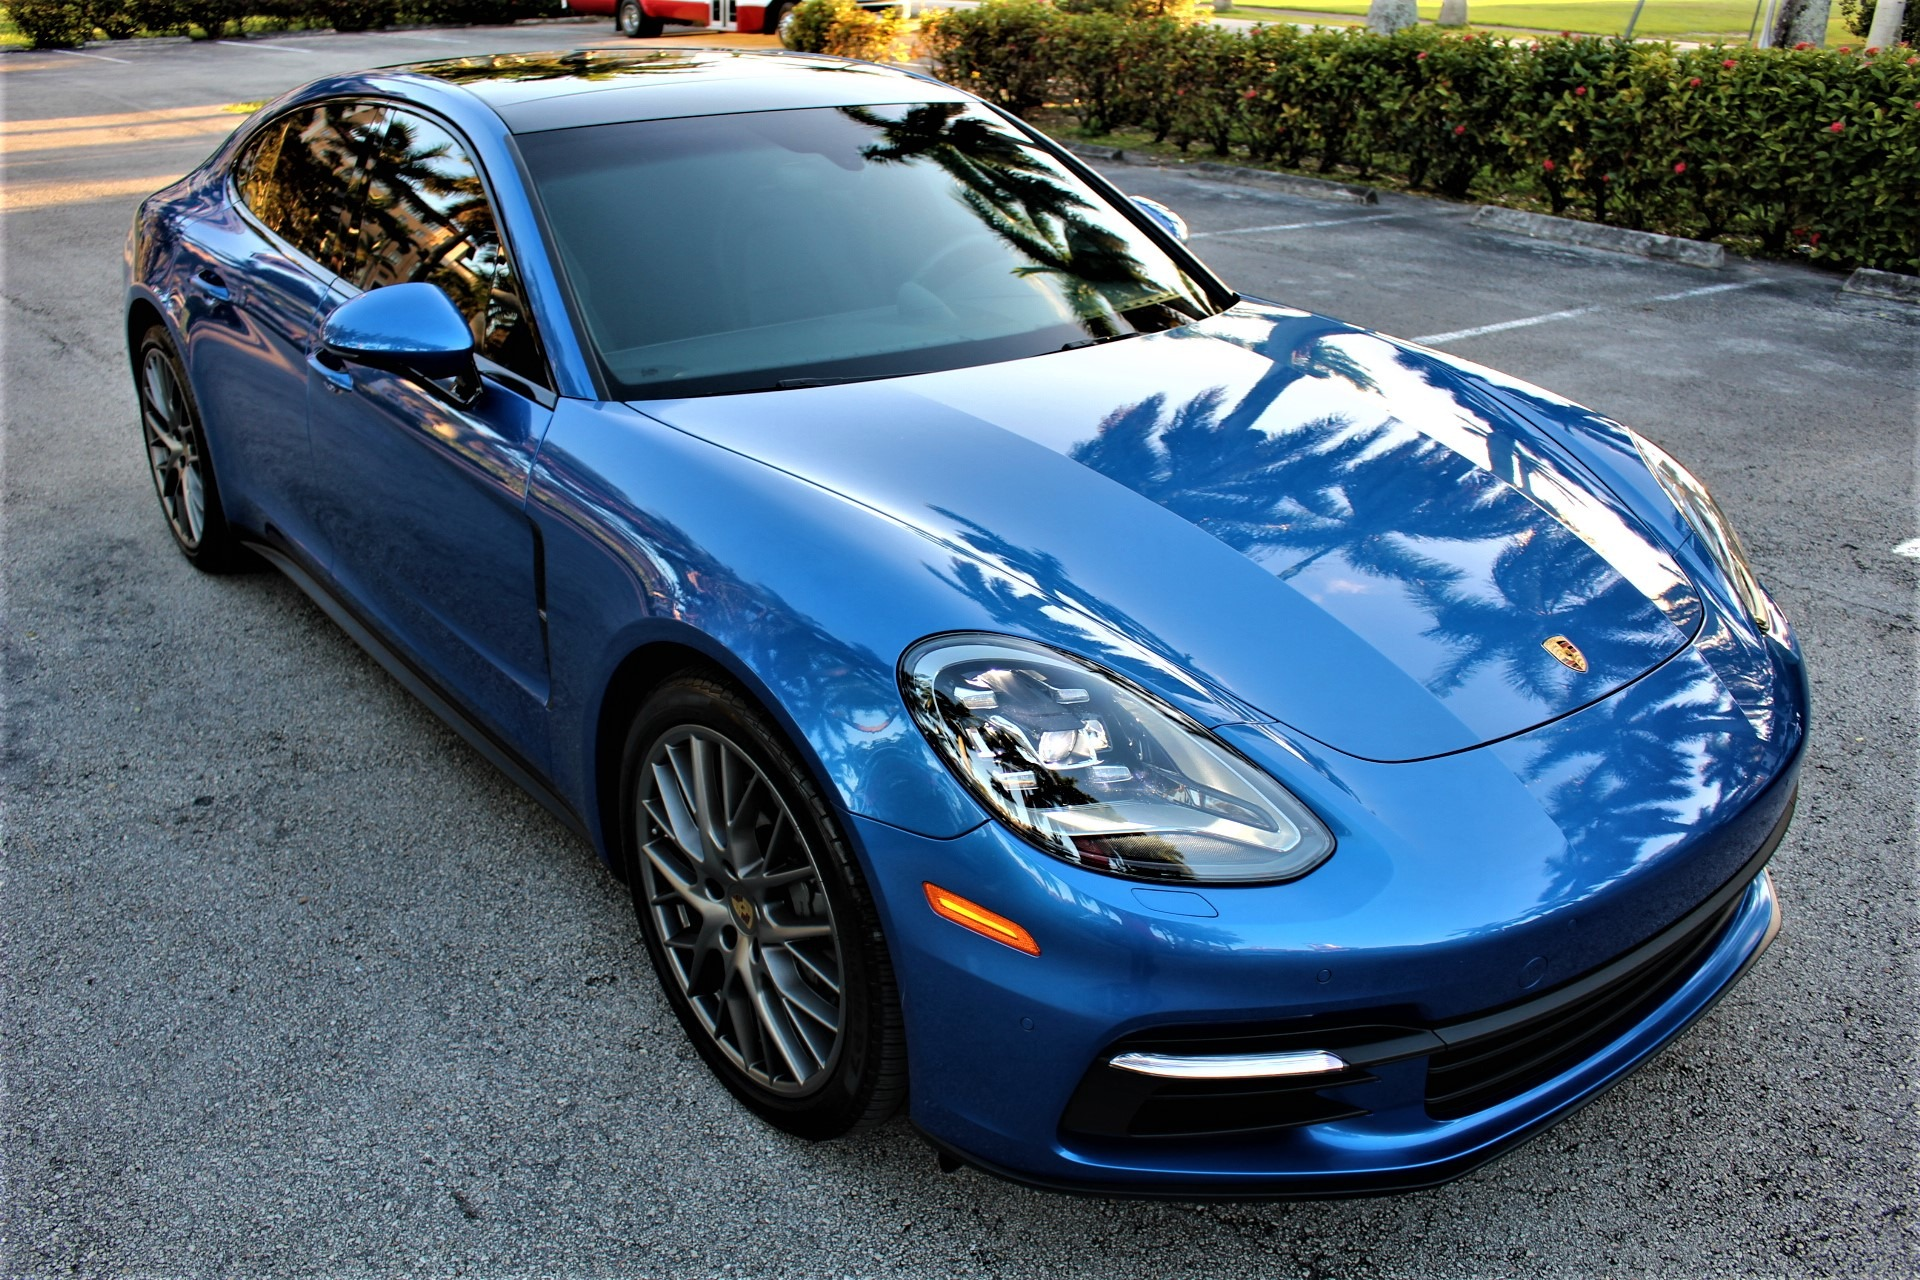 Used 2018 Porsche Panamera 4S for sale $83,850 at The Gables Sports Cars in Miami FL 33146 1